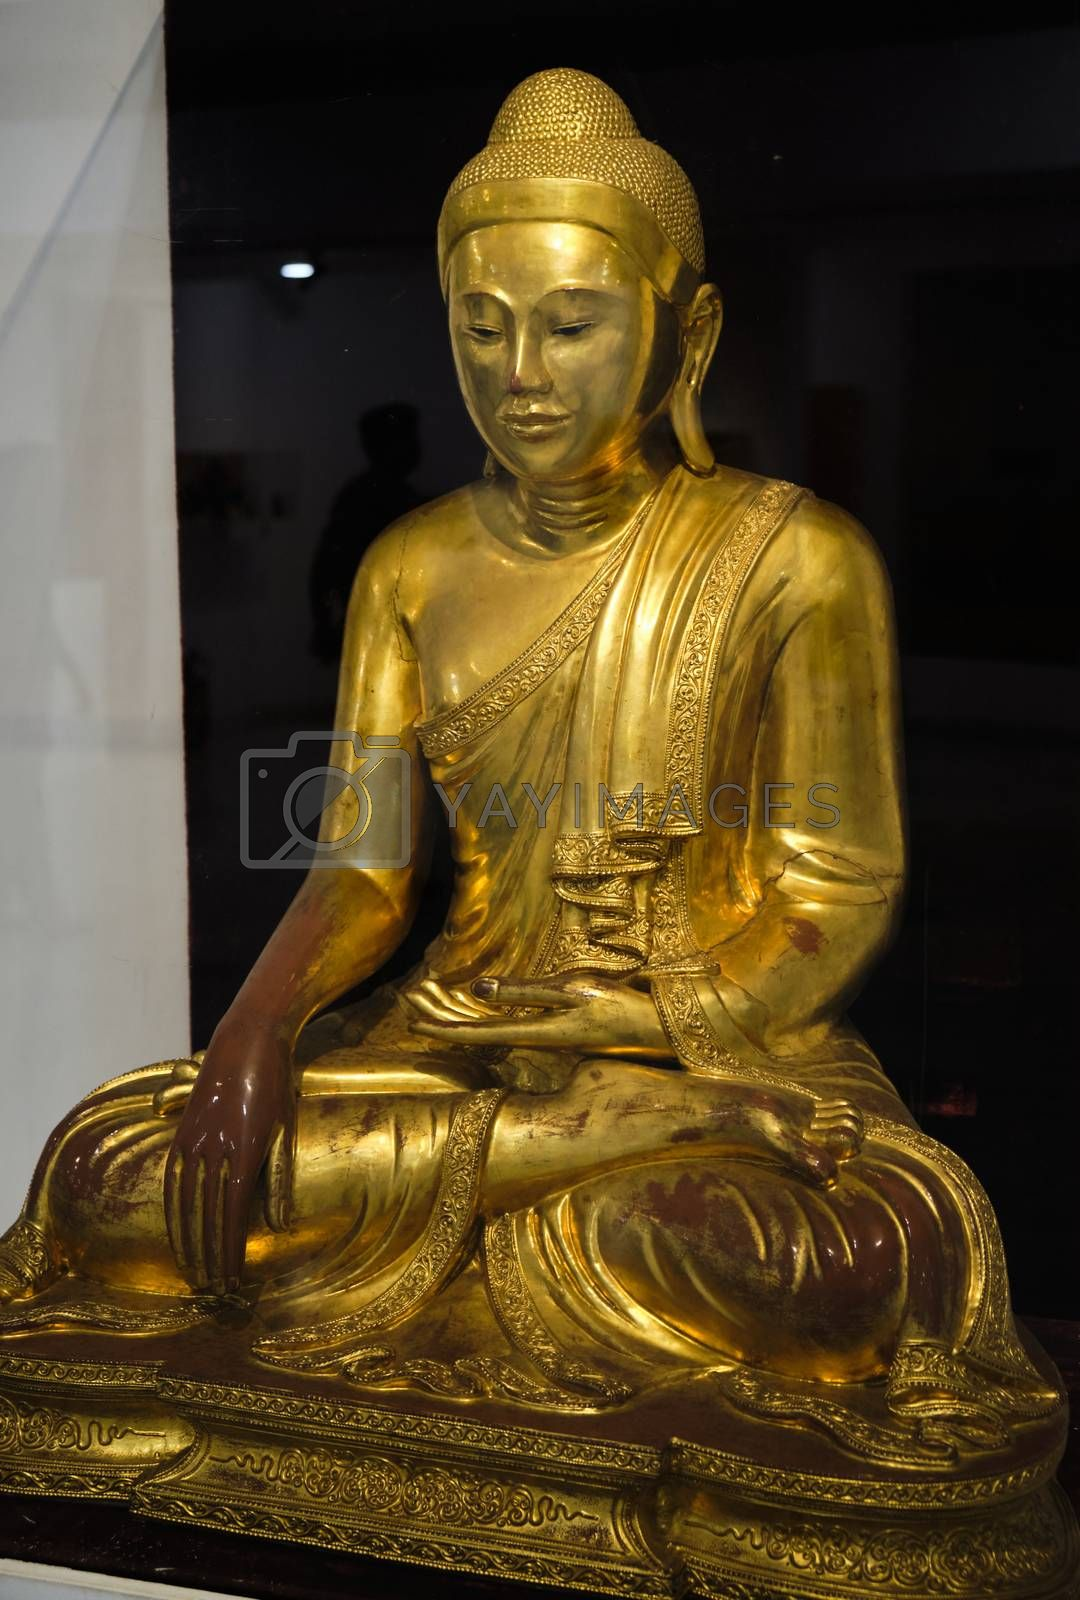 New Delhi / India - September 26, 2019: Gilded statue of a Buddha in the National Museum of India in New Delhi